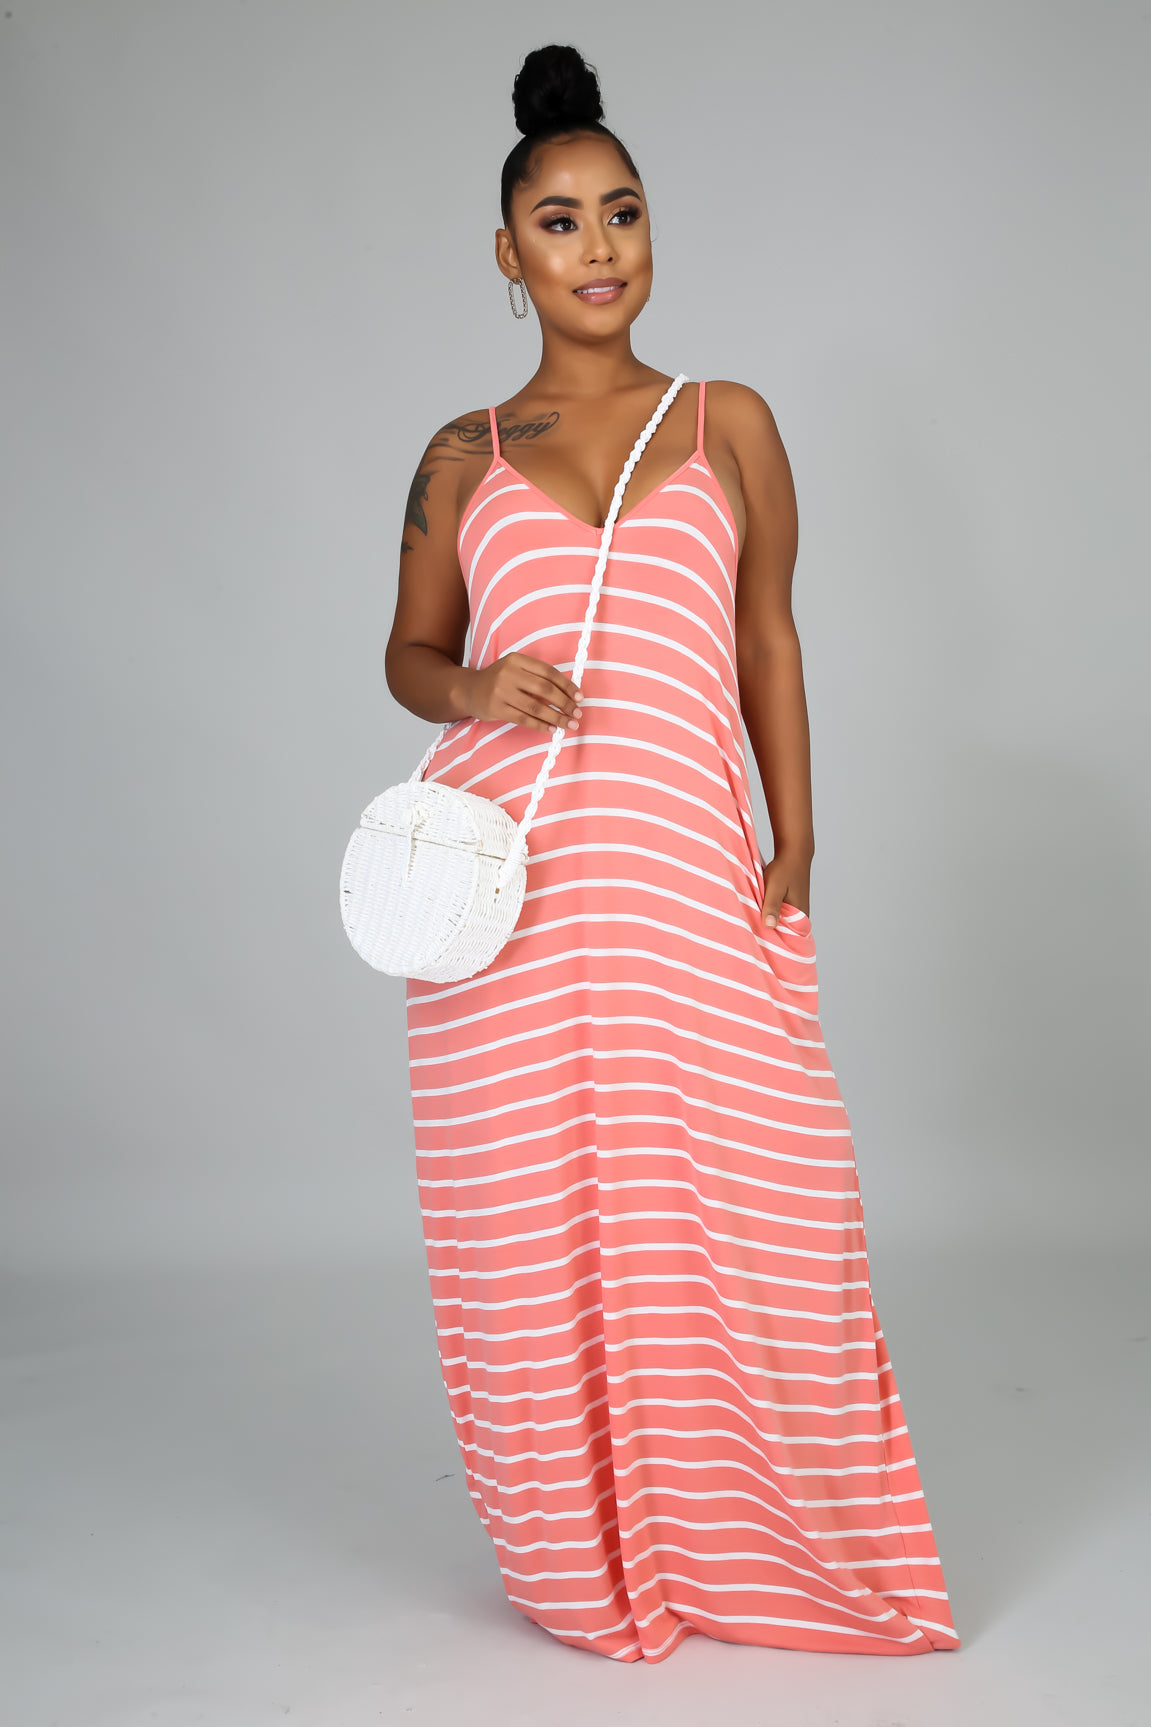 Go Crazy Maxi Dress - Coral